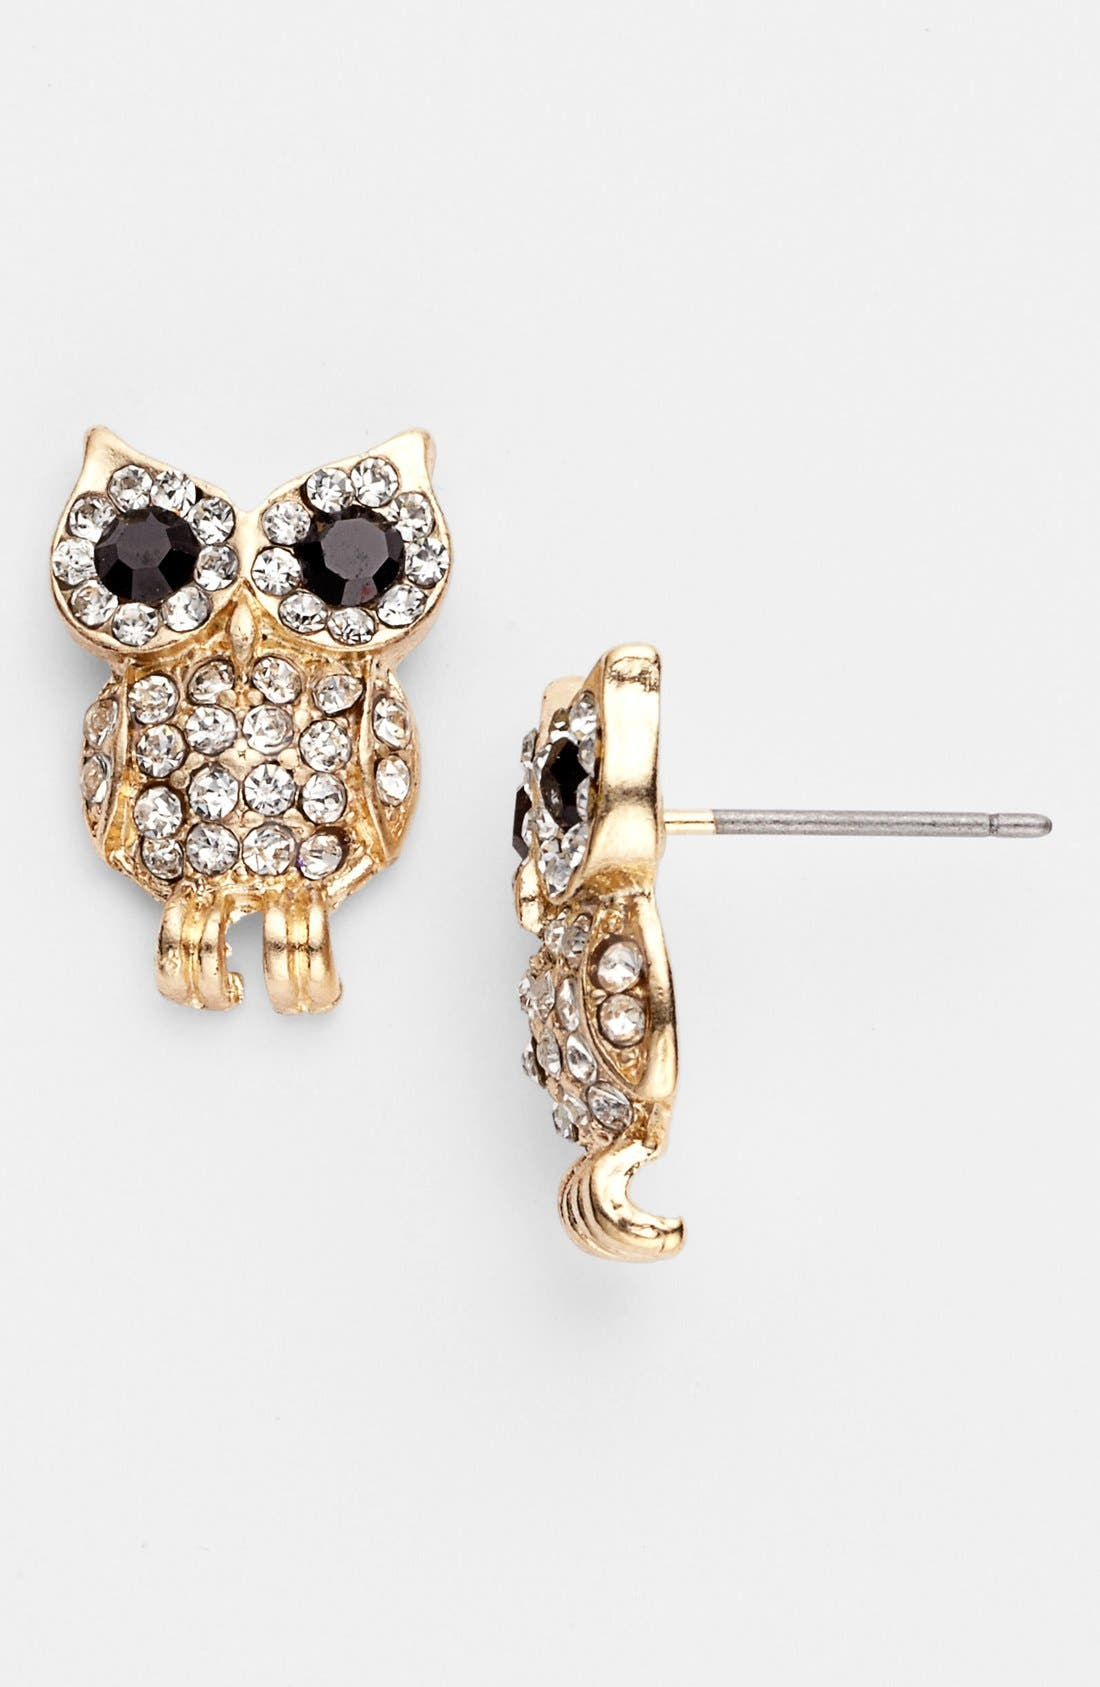 Main Image - Cara Couture 'Owl' Earrings